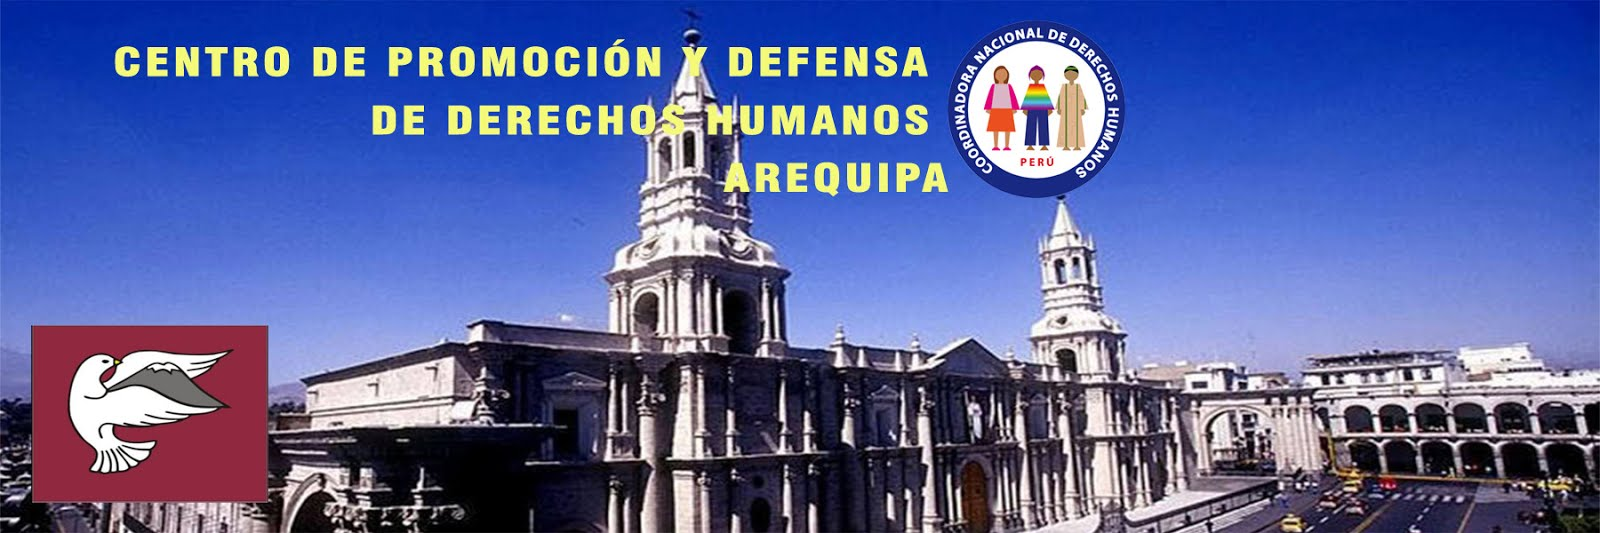 CEPRODEH - AREQUIPA